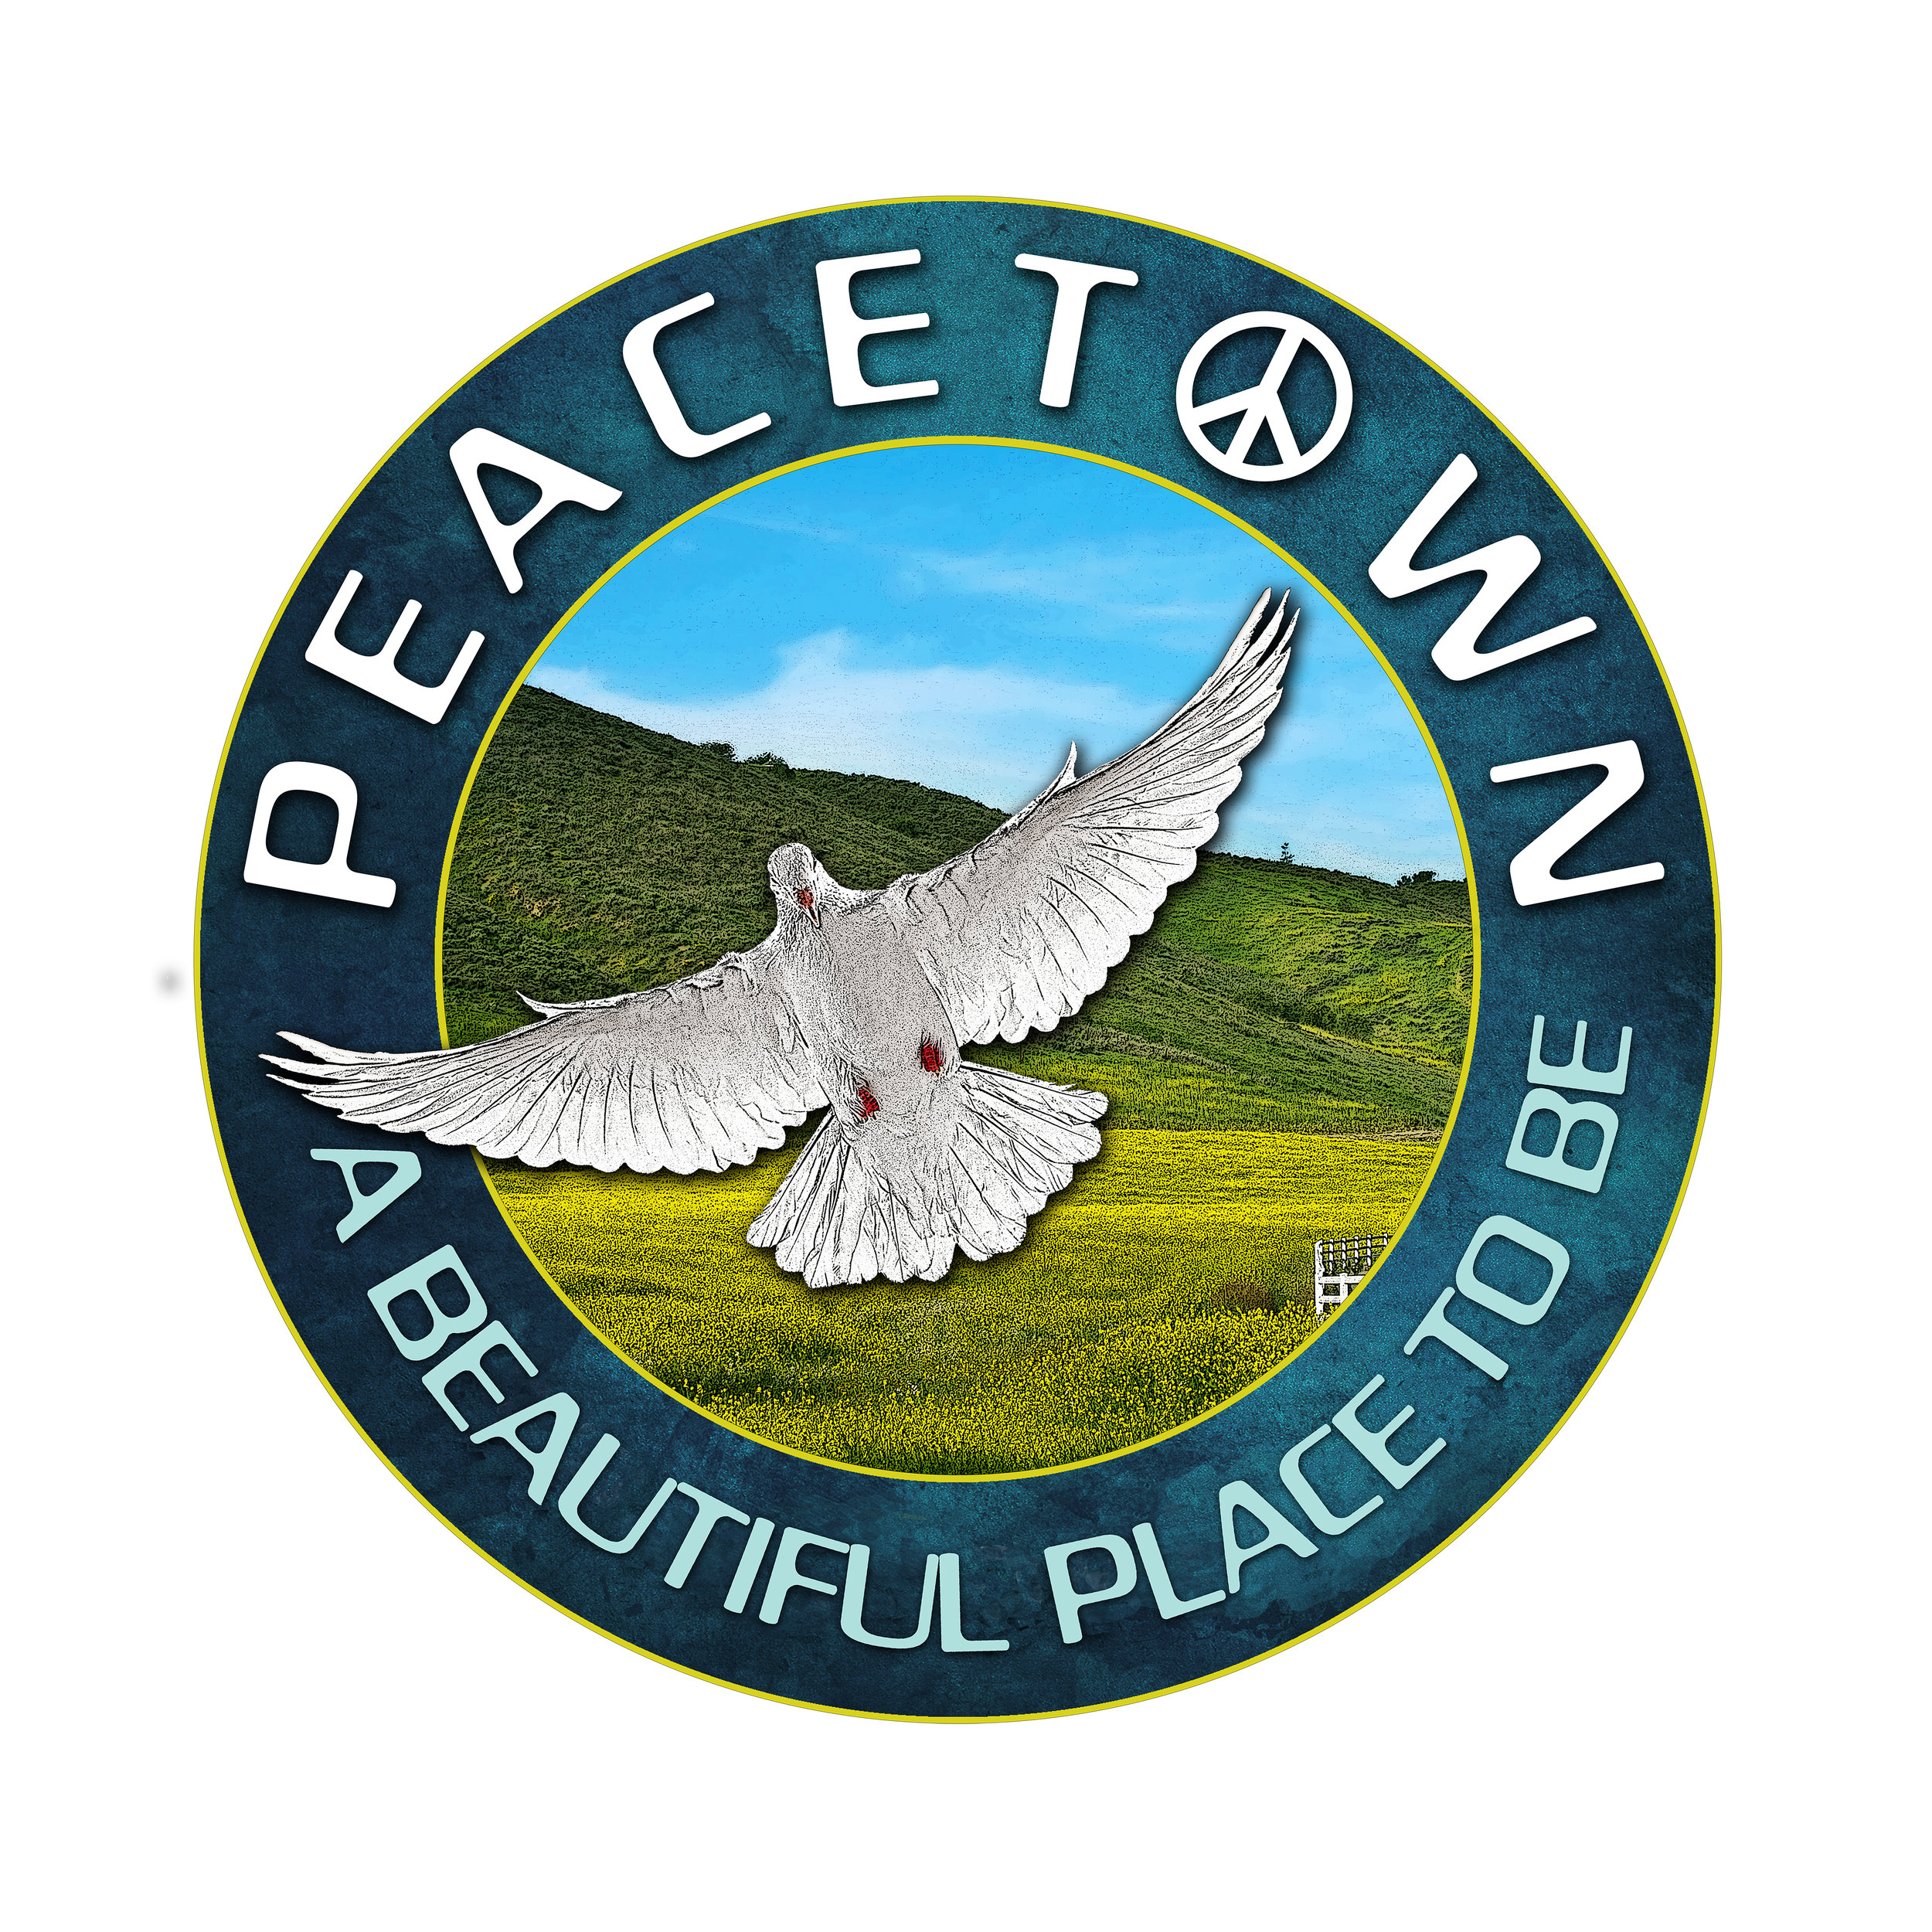 peacetown_a-beautiful-place-to-be.jpg